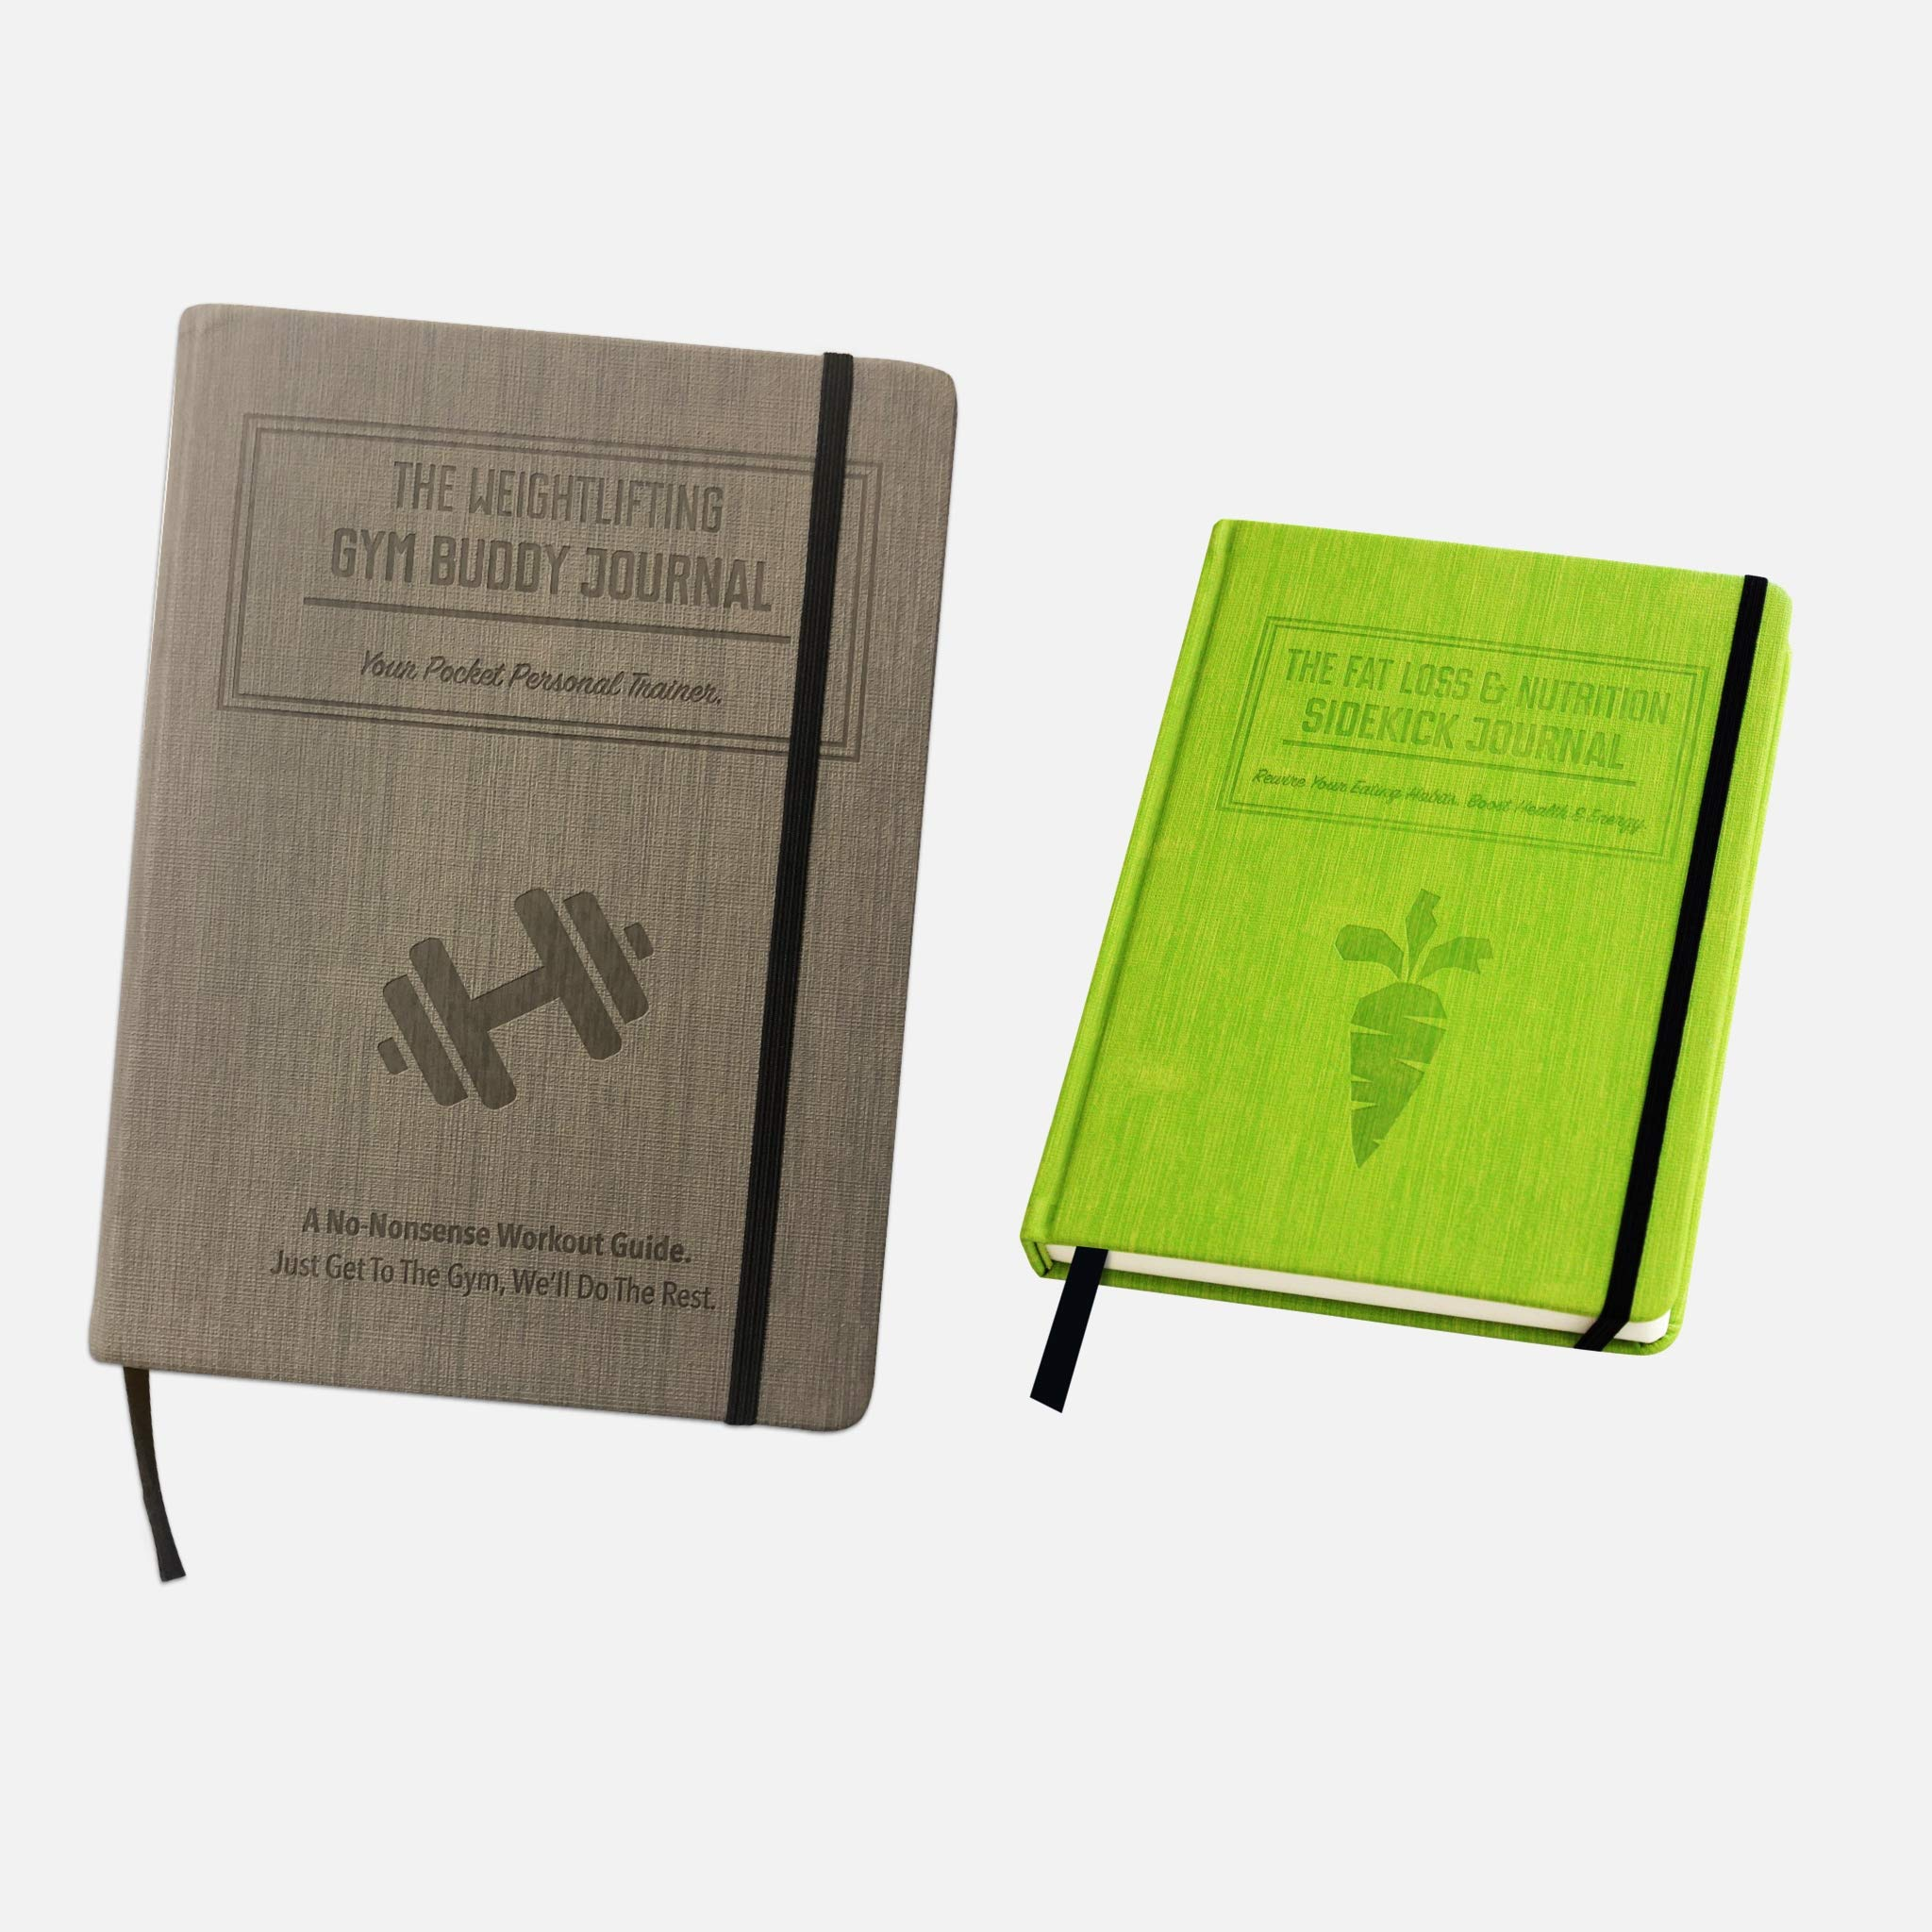 1x Weightlifting Gym Buddy Journal Bundle with 1x Fat Loss & Nutrition Sidekick Journal. Work Towards Your Fitness & Nutrition Goals simultaneously. by Habit Nest